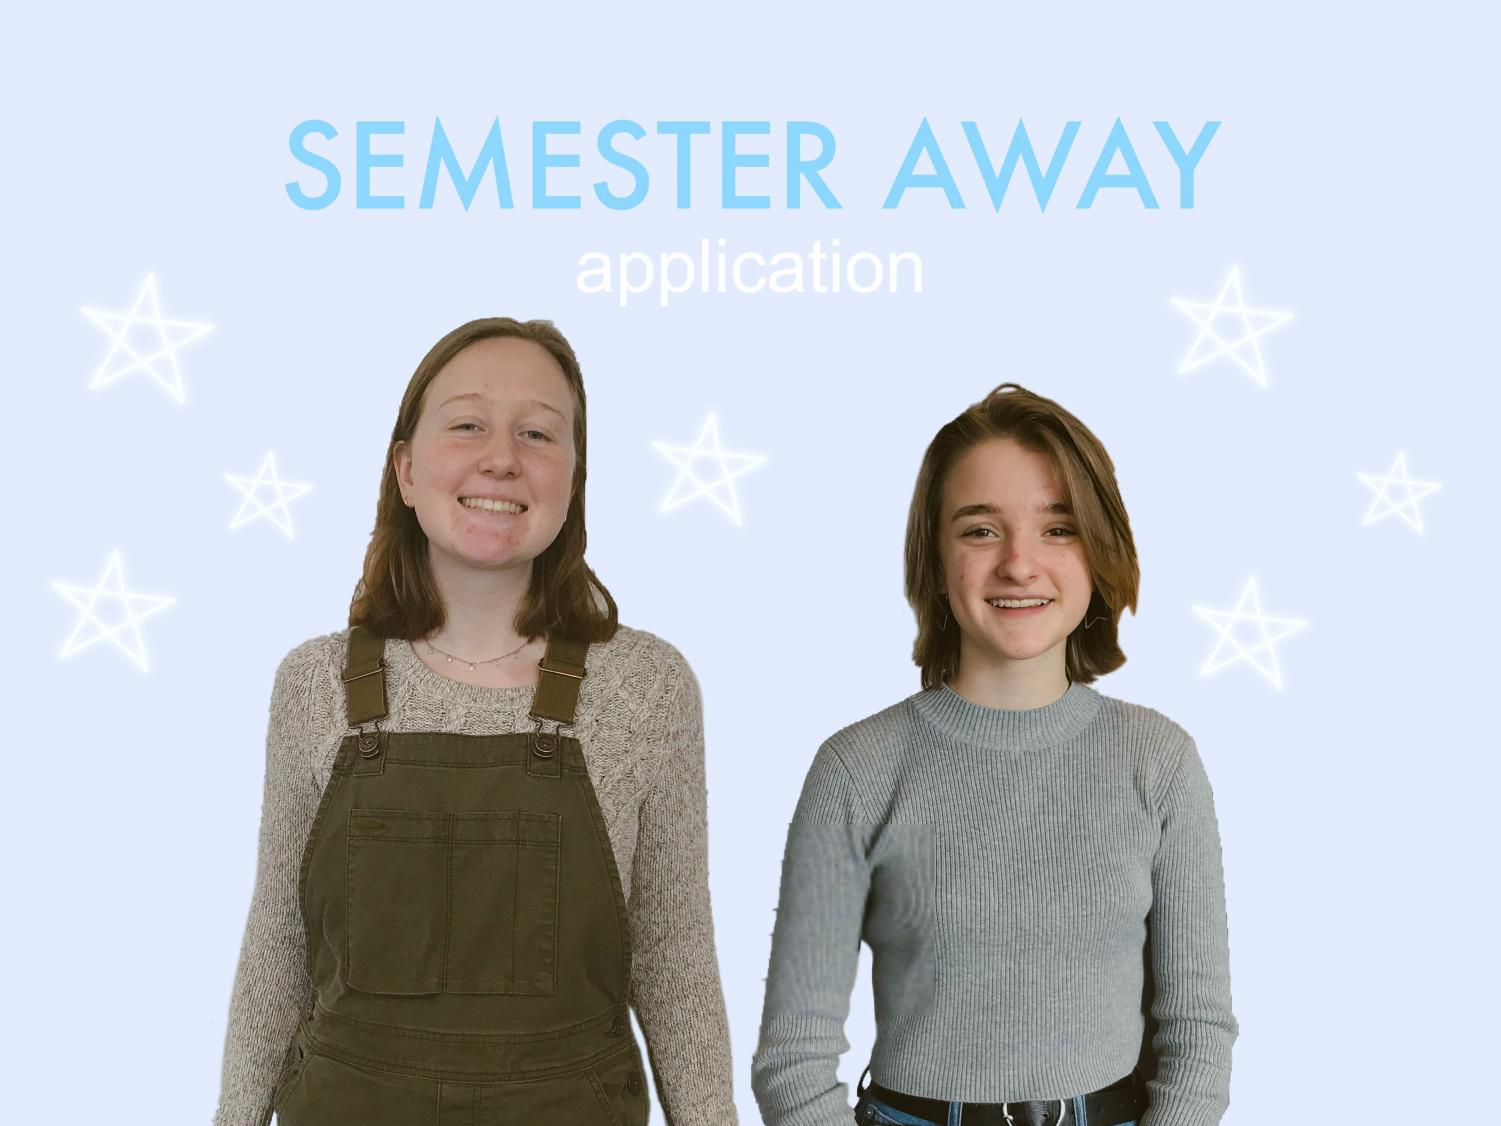 Senior Paige Indritz and sophomore Val Chafee talk about the semester away application.